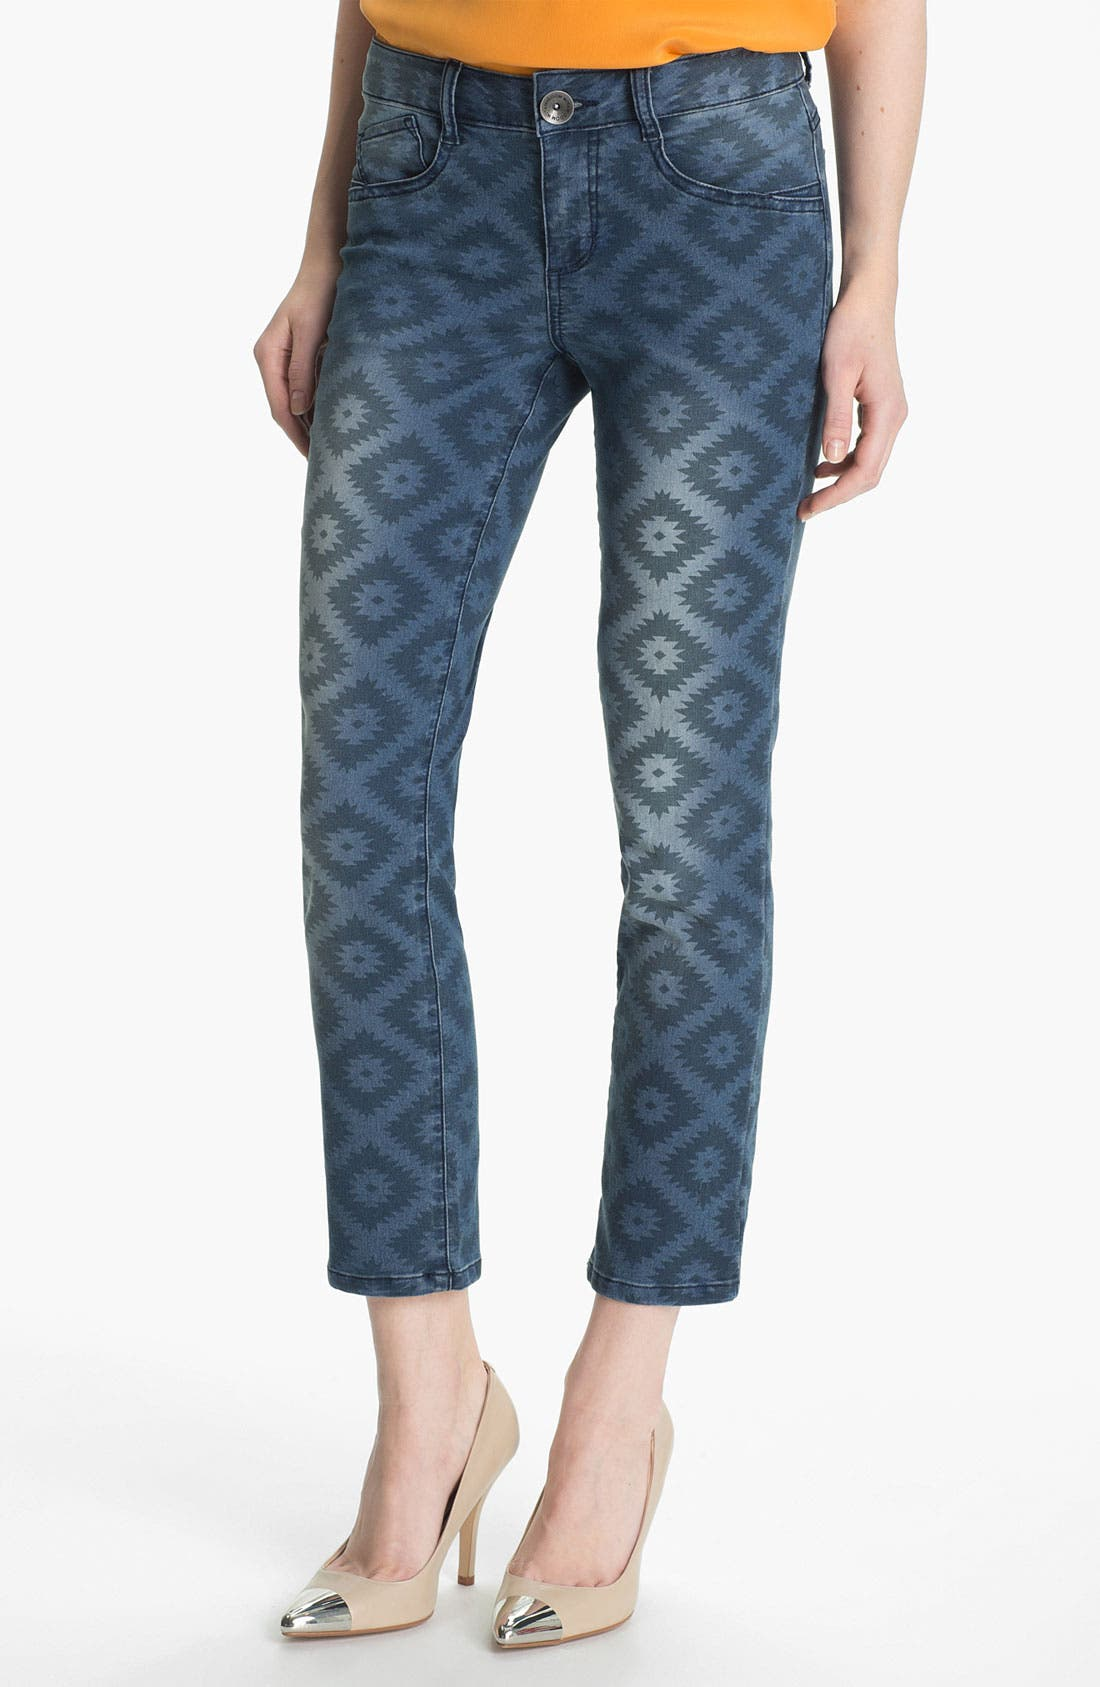 Alternate Image 1 Selected - Wit & Wisdom Aztec Print Ankle Jeans (Nordstrom Exclusive)